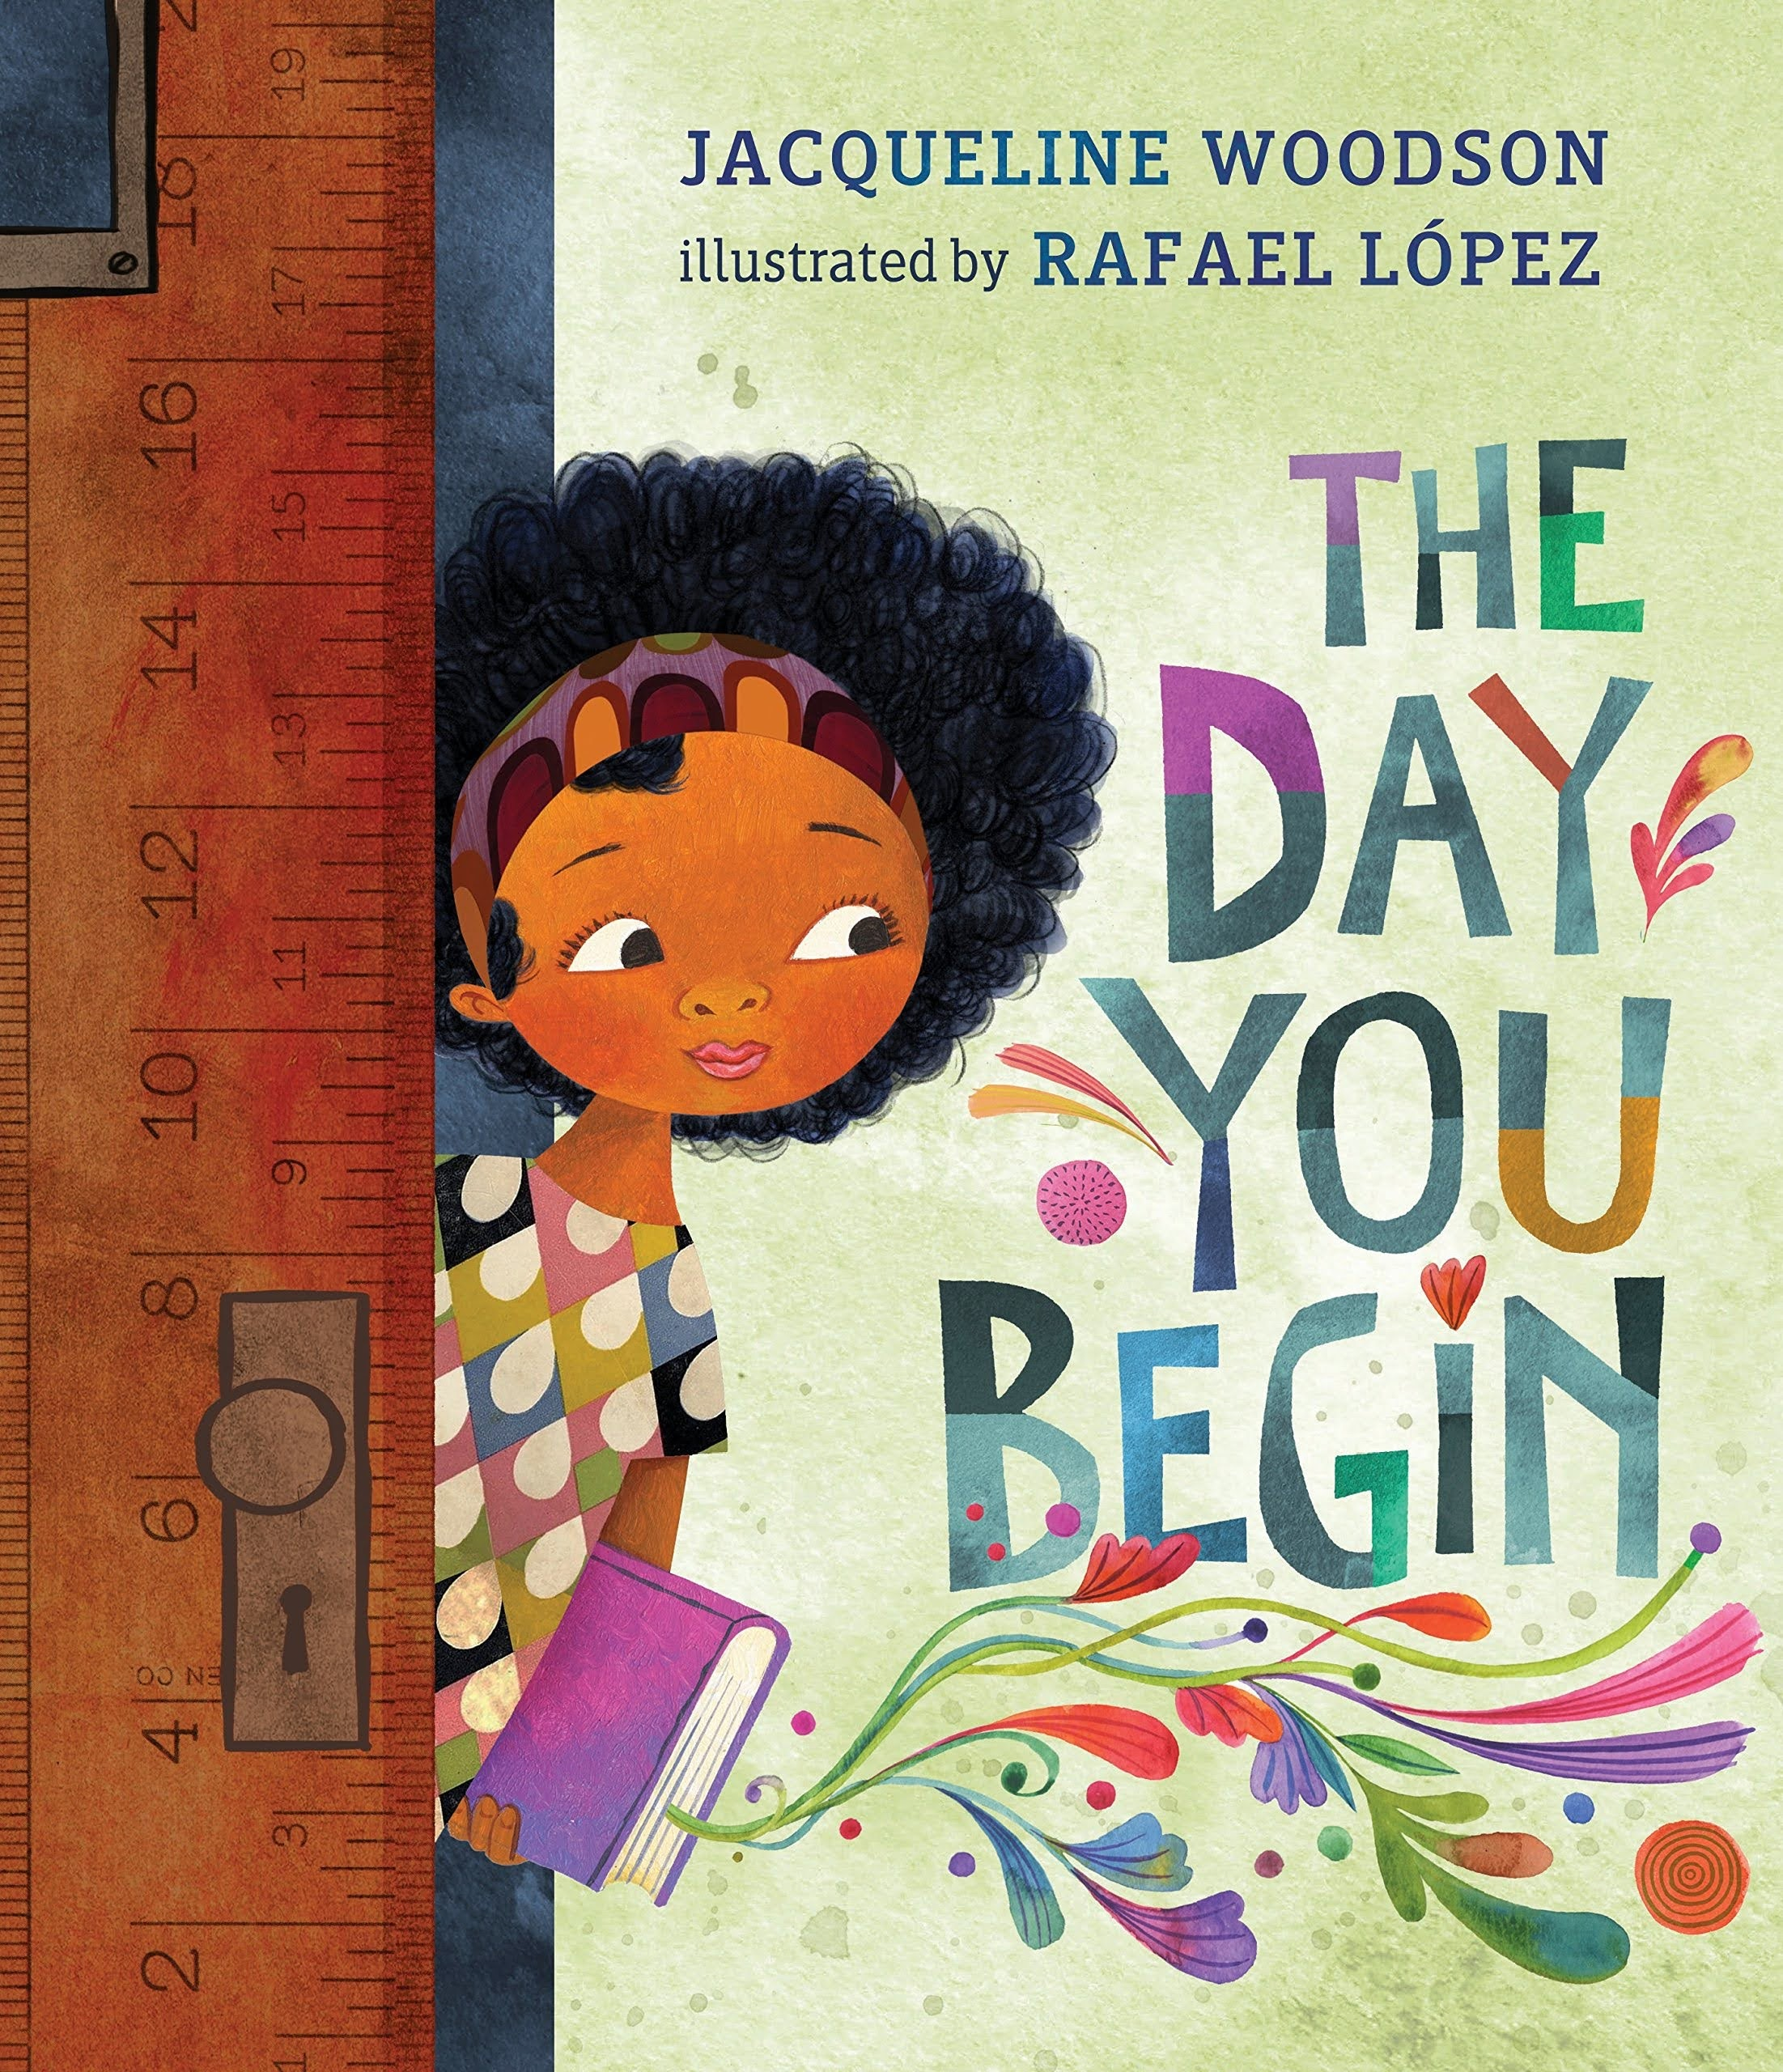 The Day You Begin by Jacqueline Woodson and illustrated by Rafael López